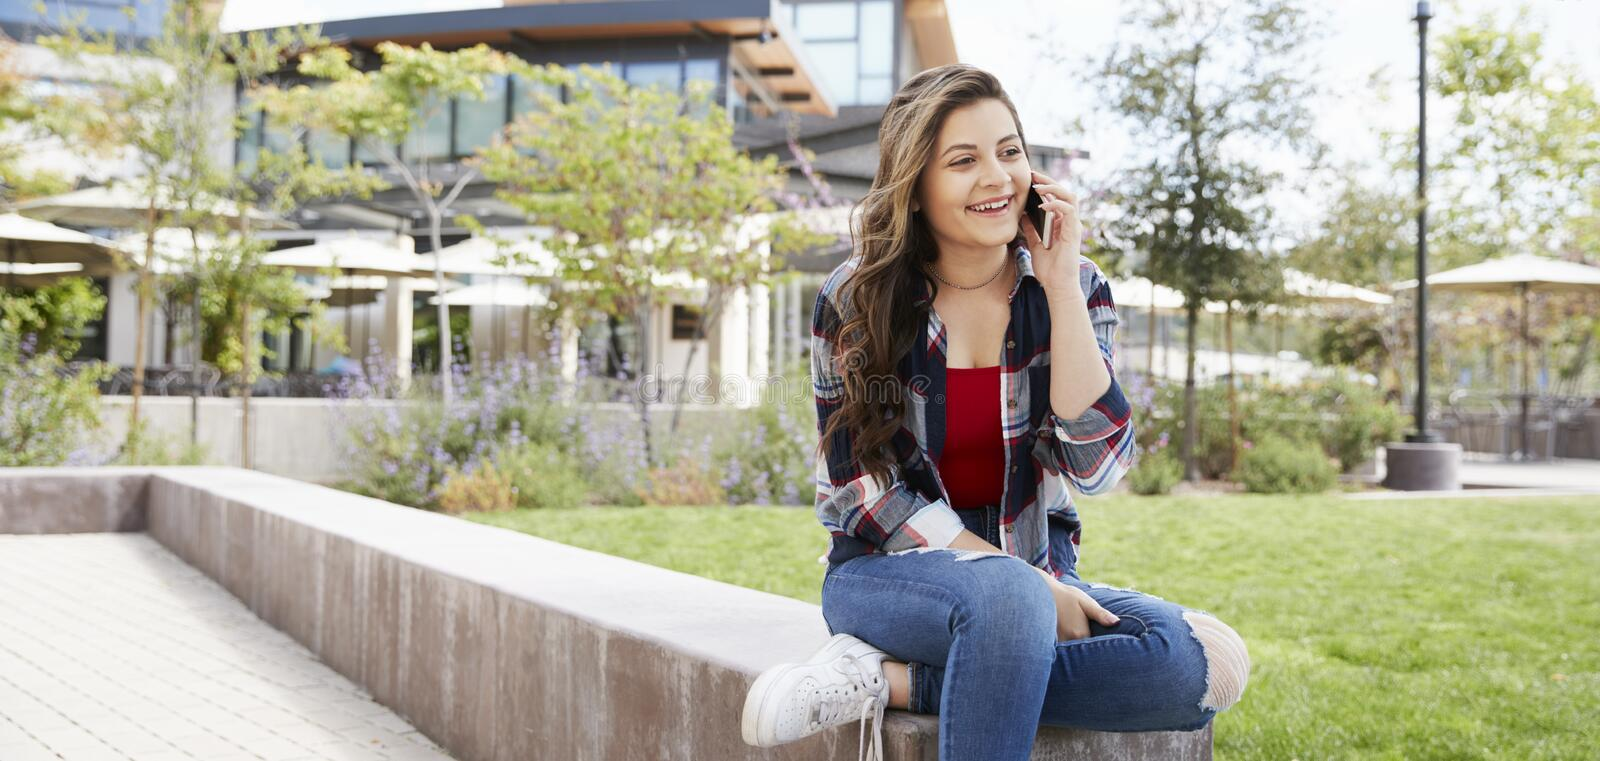 Female High School Student Talking On Mobile Phone Outside College Buildings royalty free stock image